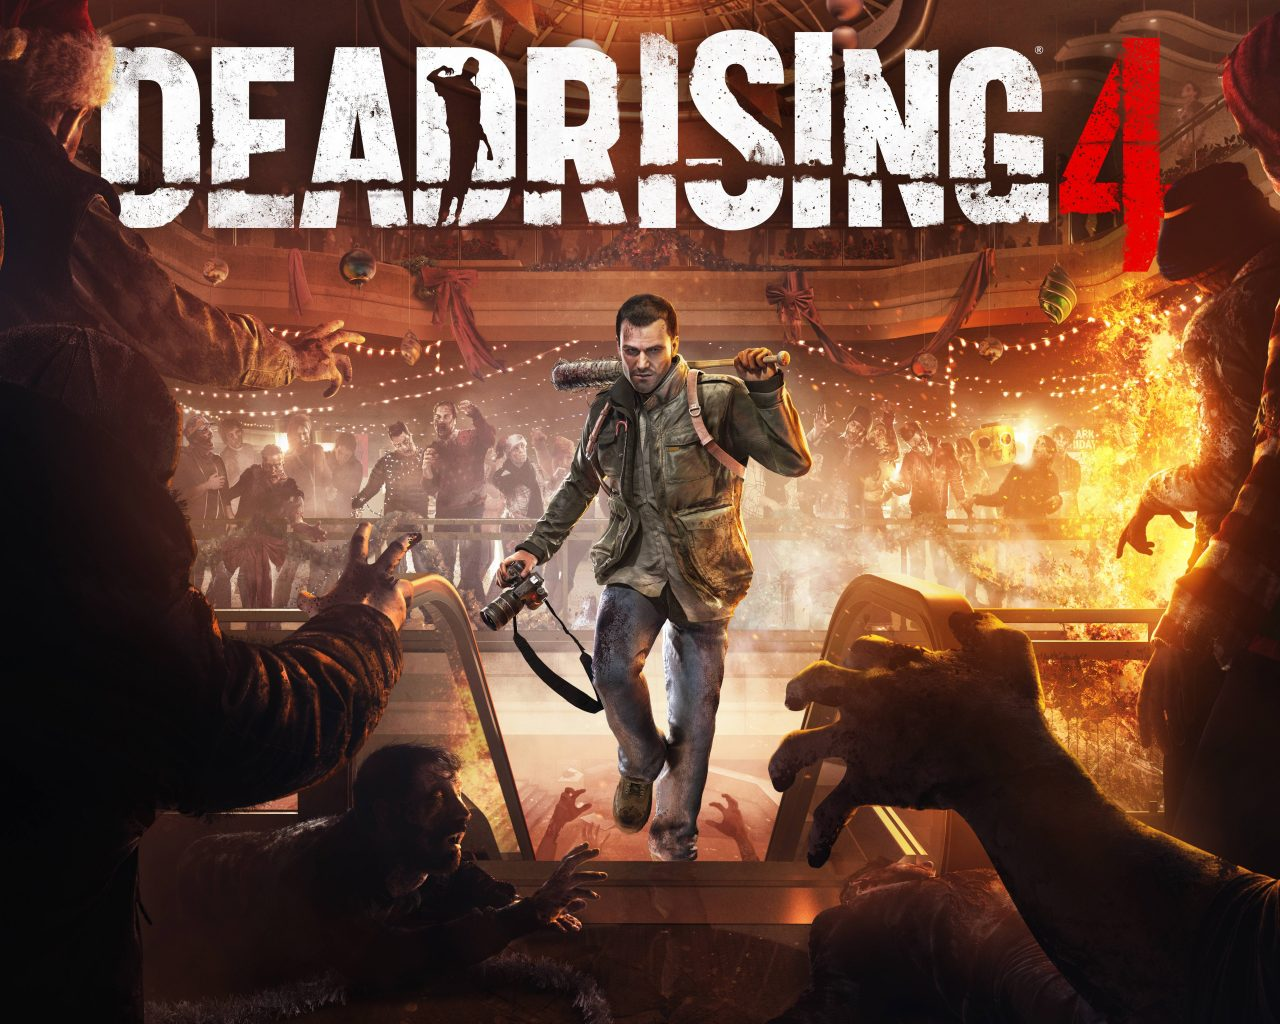 Download Wallpapers For Mobile Of Cars Dead Rising 4 Wallpaper 4k Background Hd Wallpaper